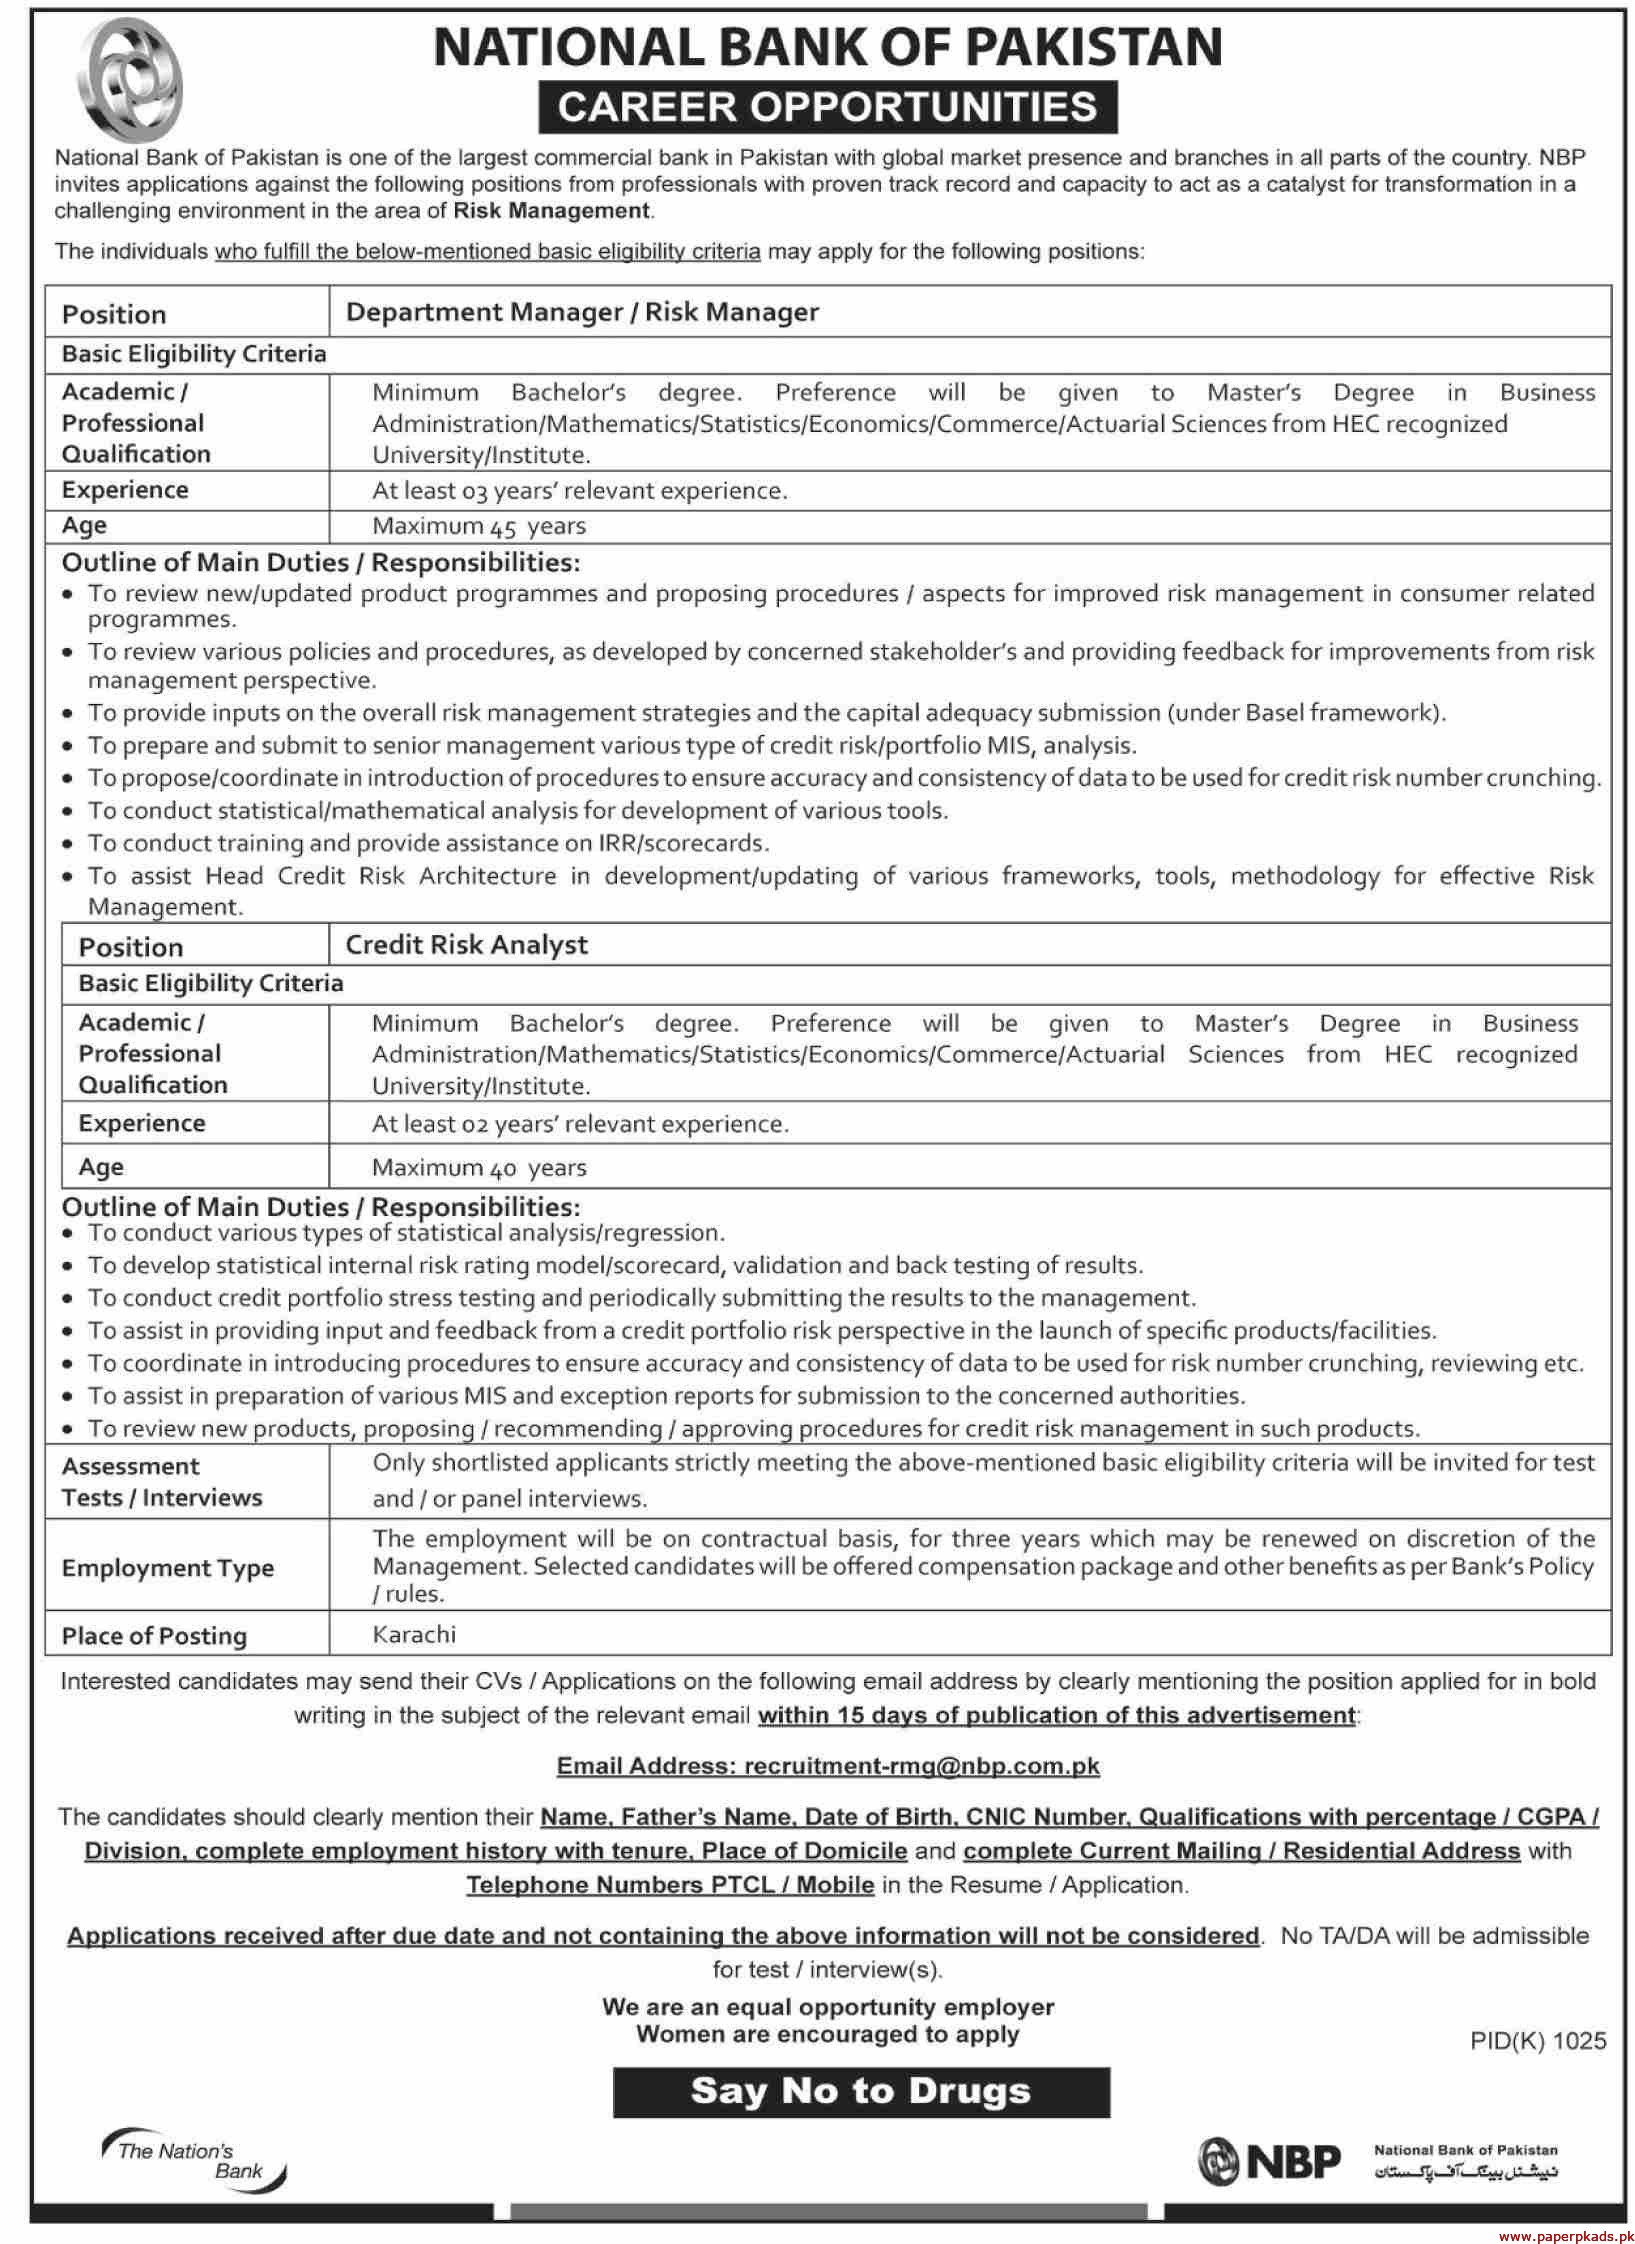 National Bank of Pakistan NBP Jobs 2019 Latest